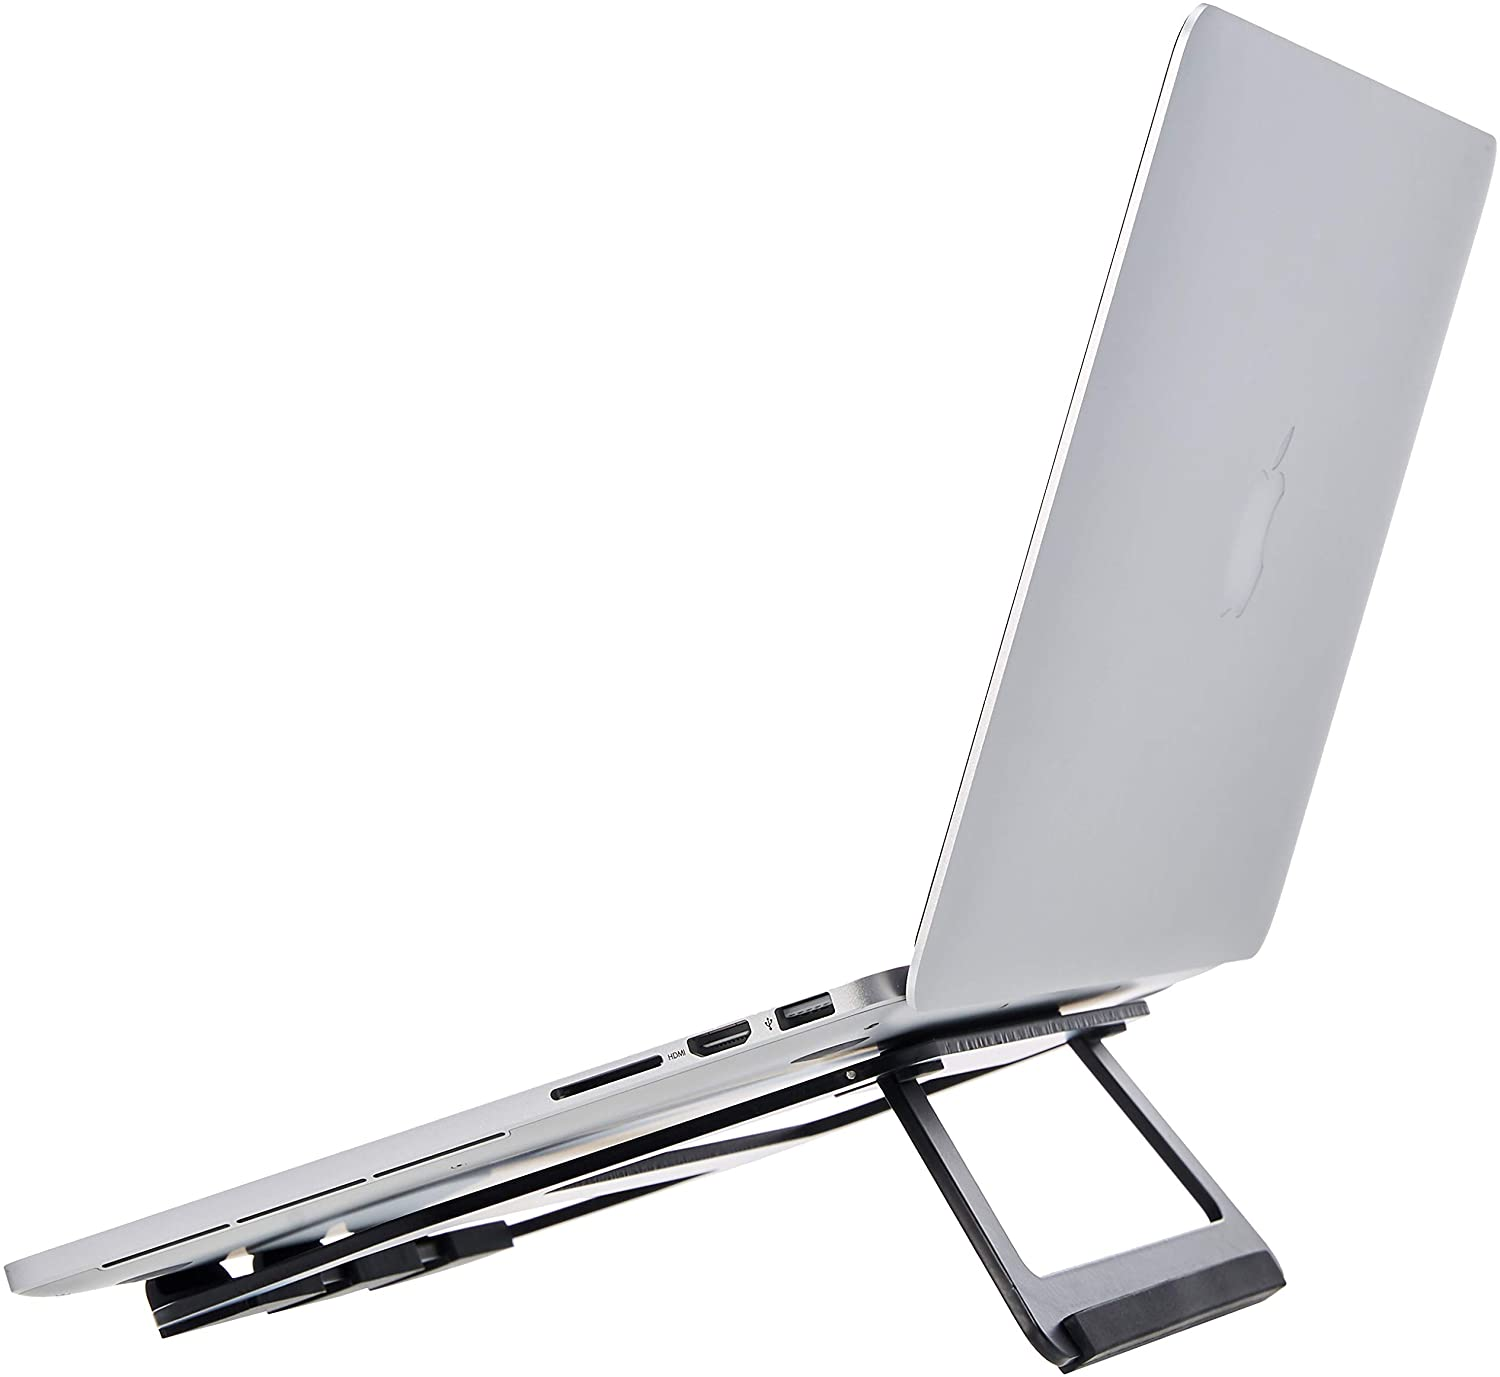 AmazonBasics Aluminum Portable Foldable Laptop Support Stand for Laptops up to 15 Inches, Black